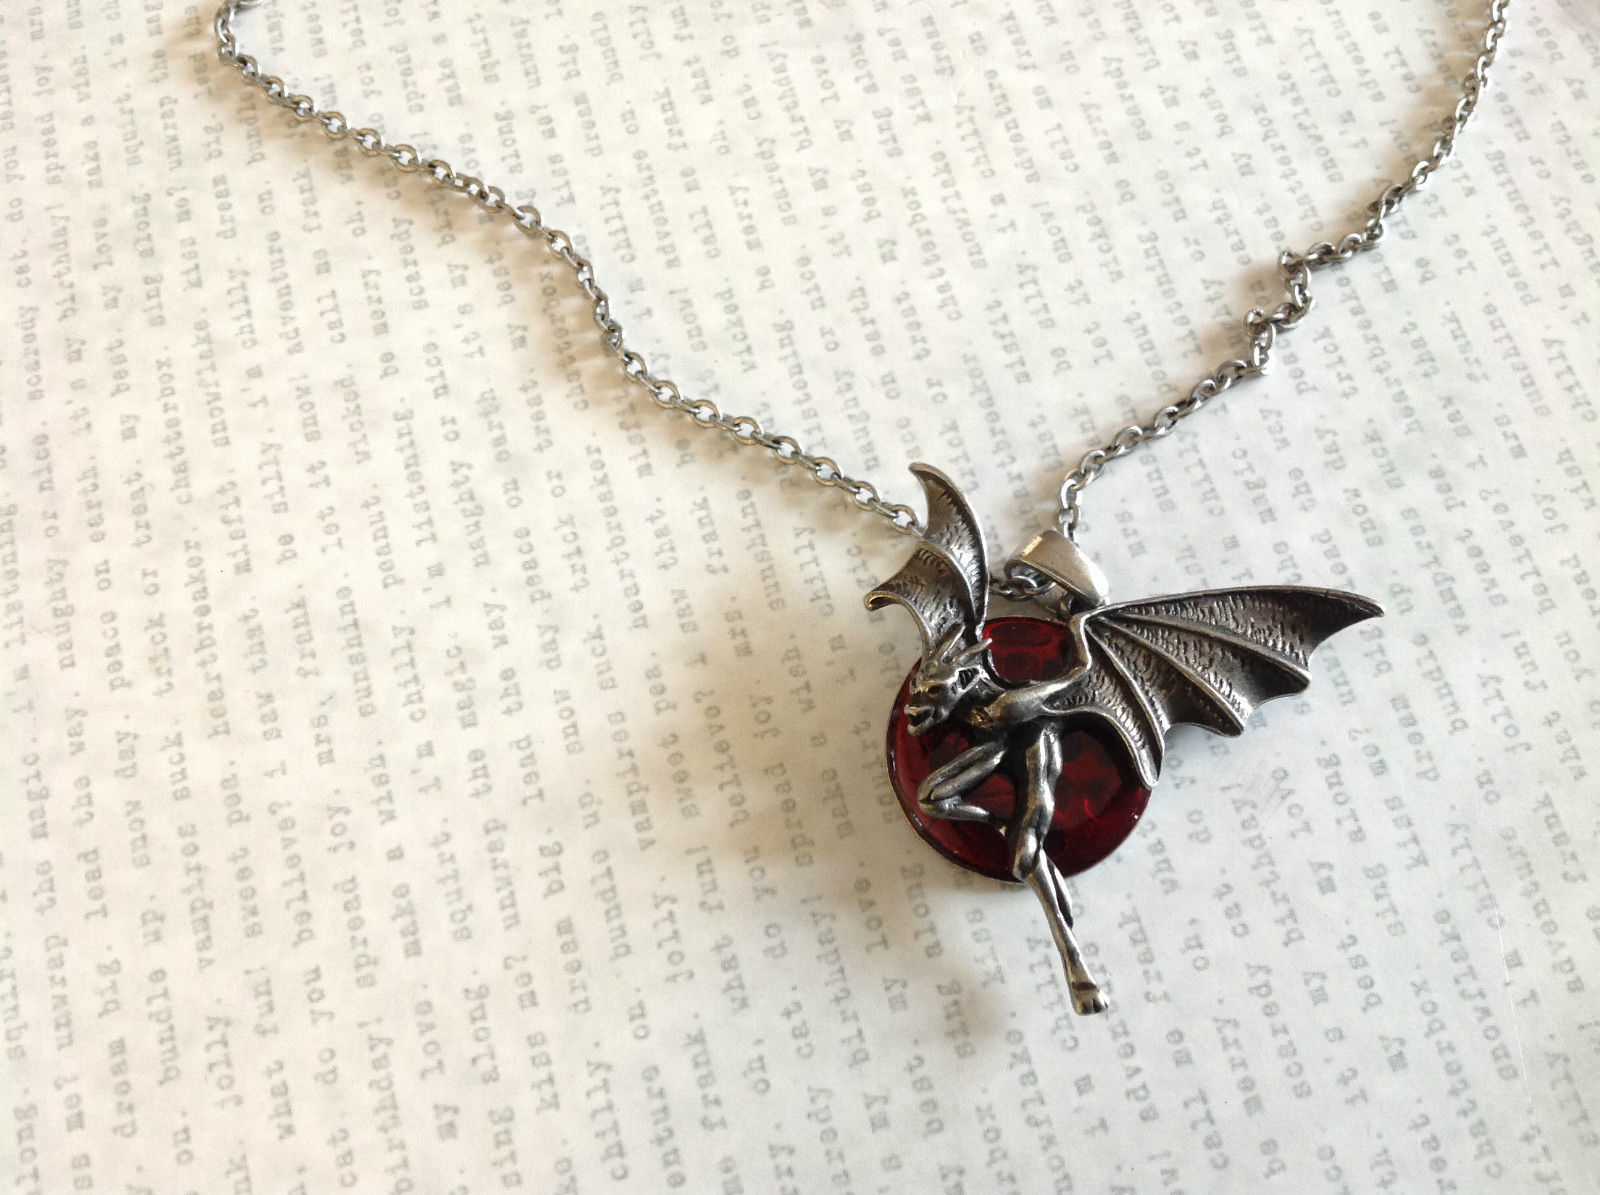 Pewter Metal Necklace with Demon Pendant and Red Enamel Vintage Look